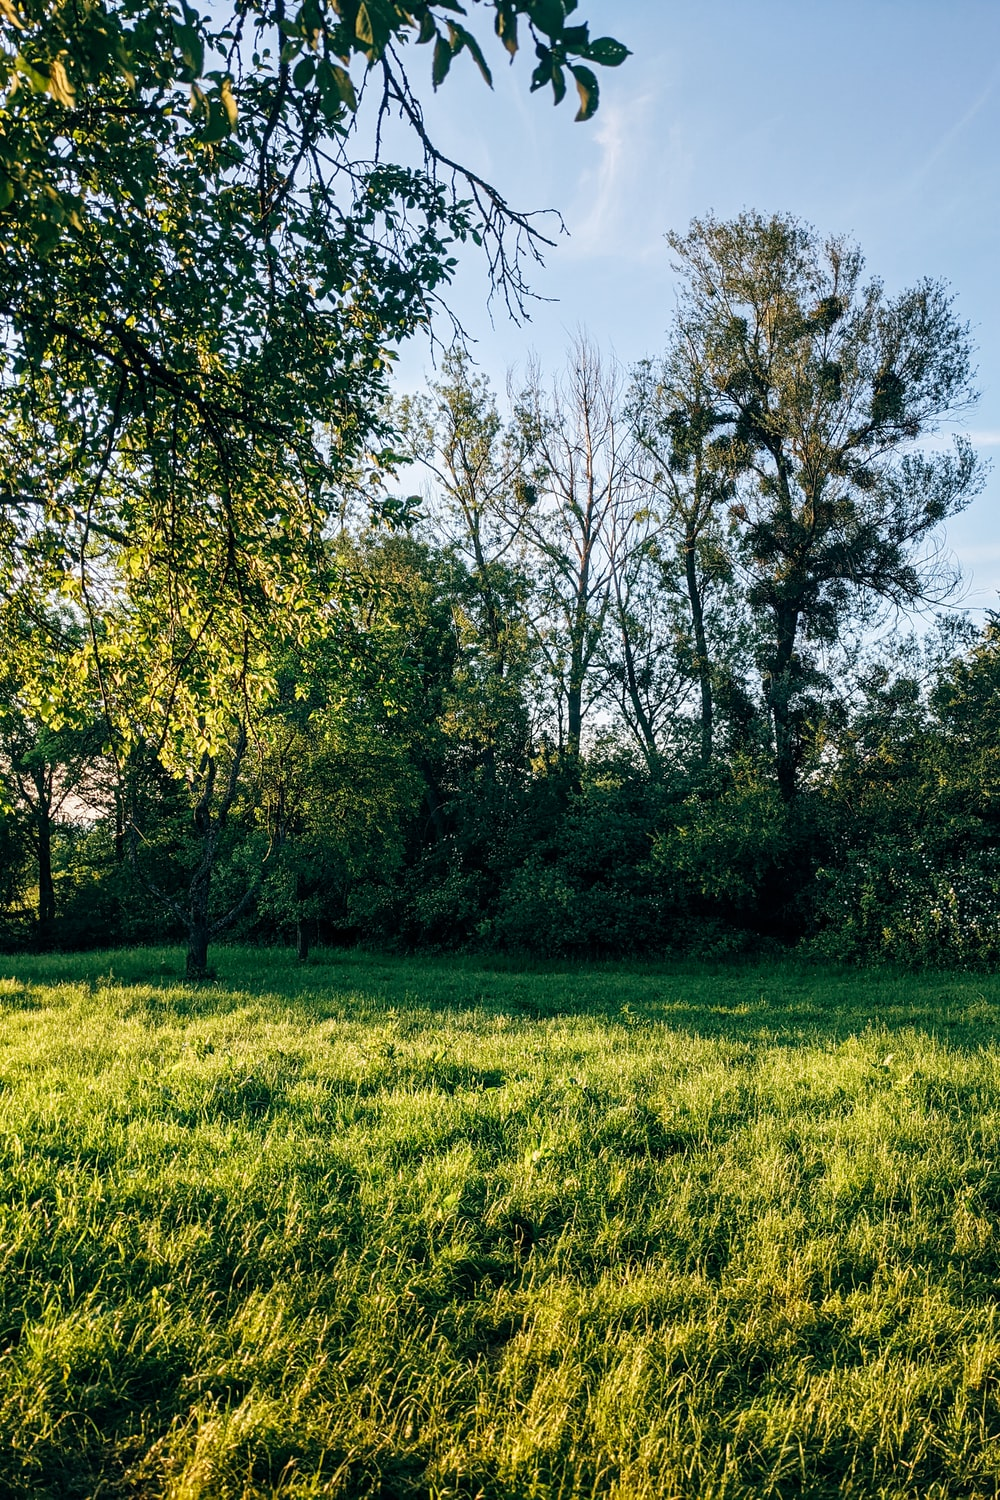 green grass field with green trees